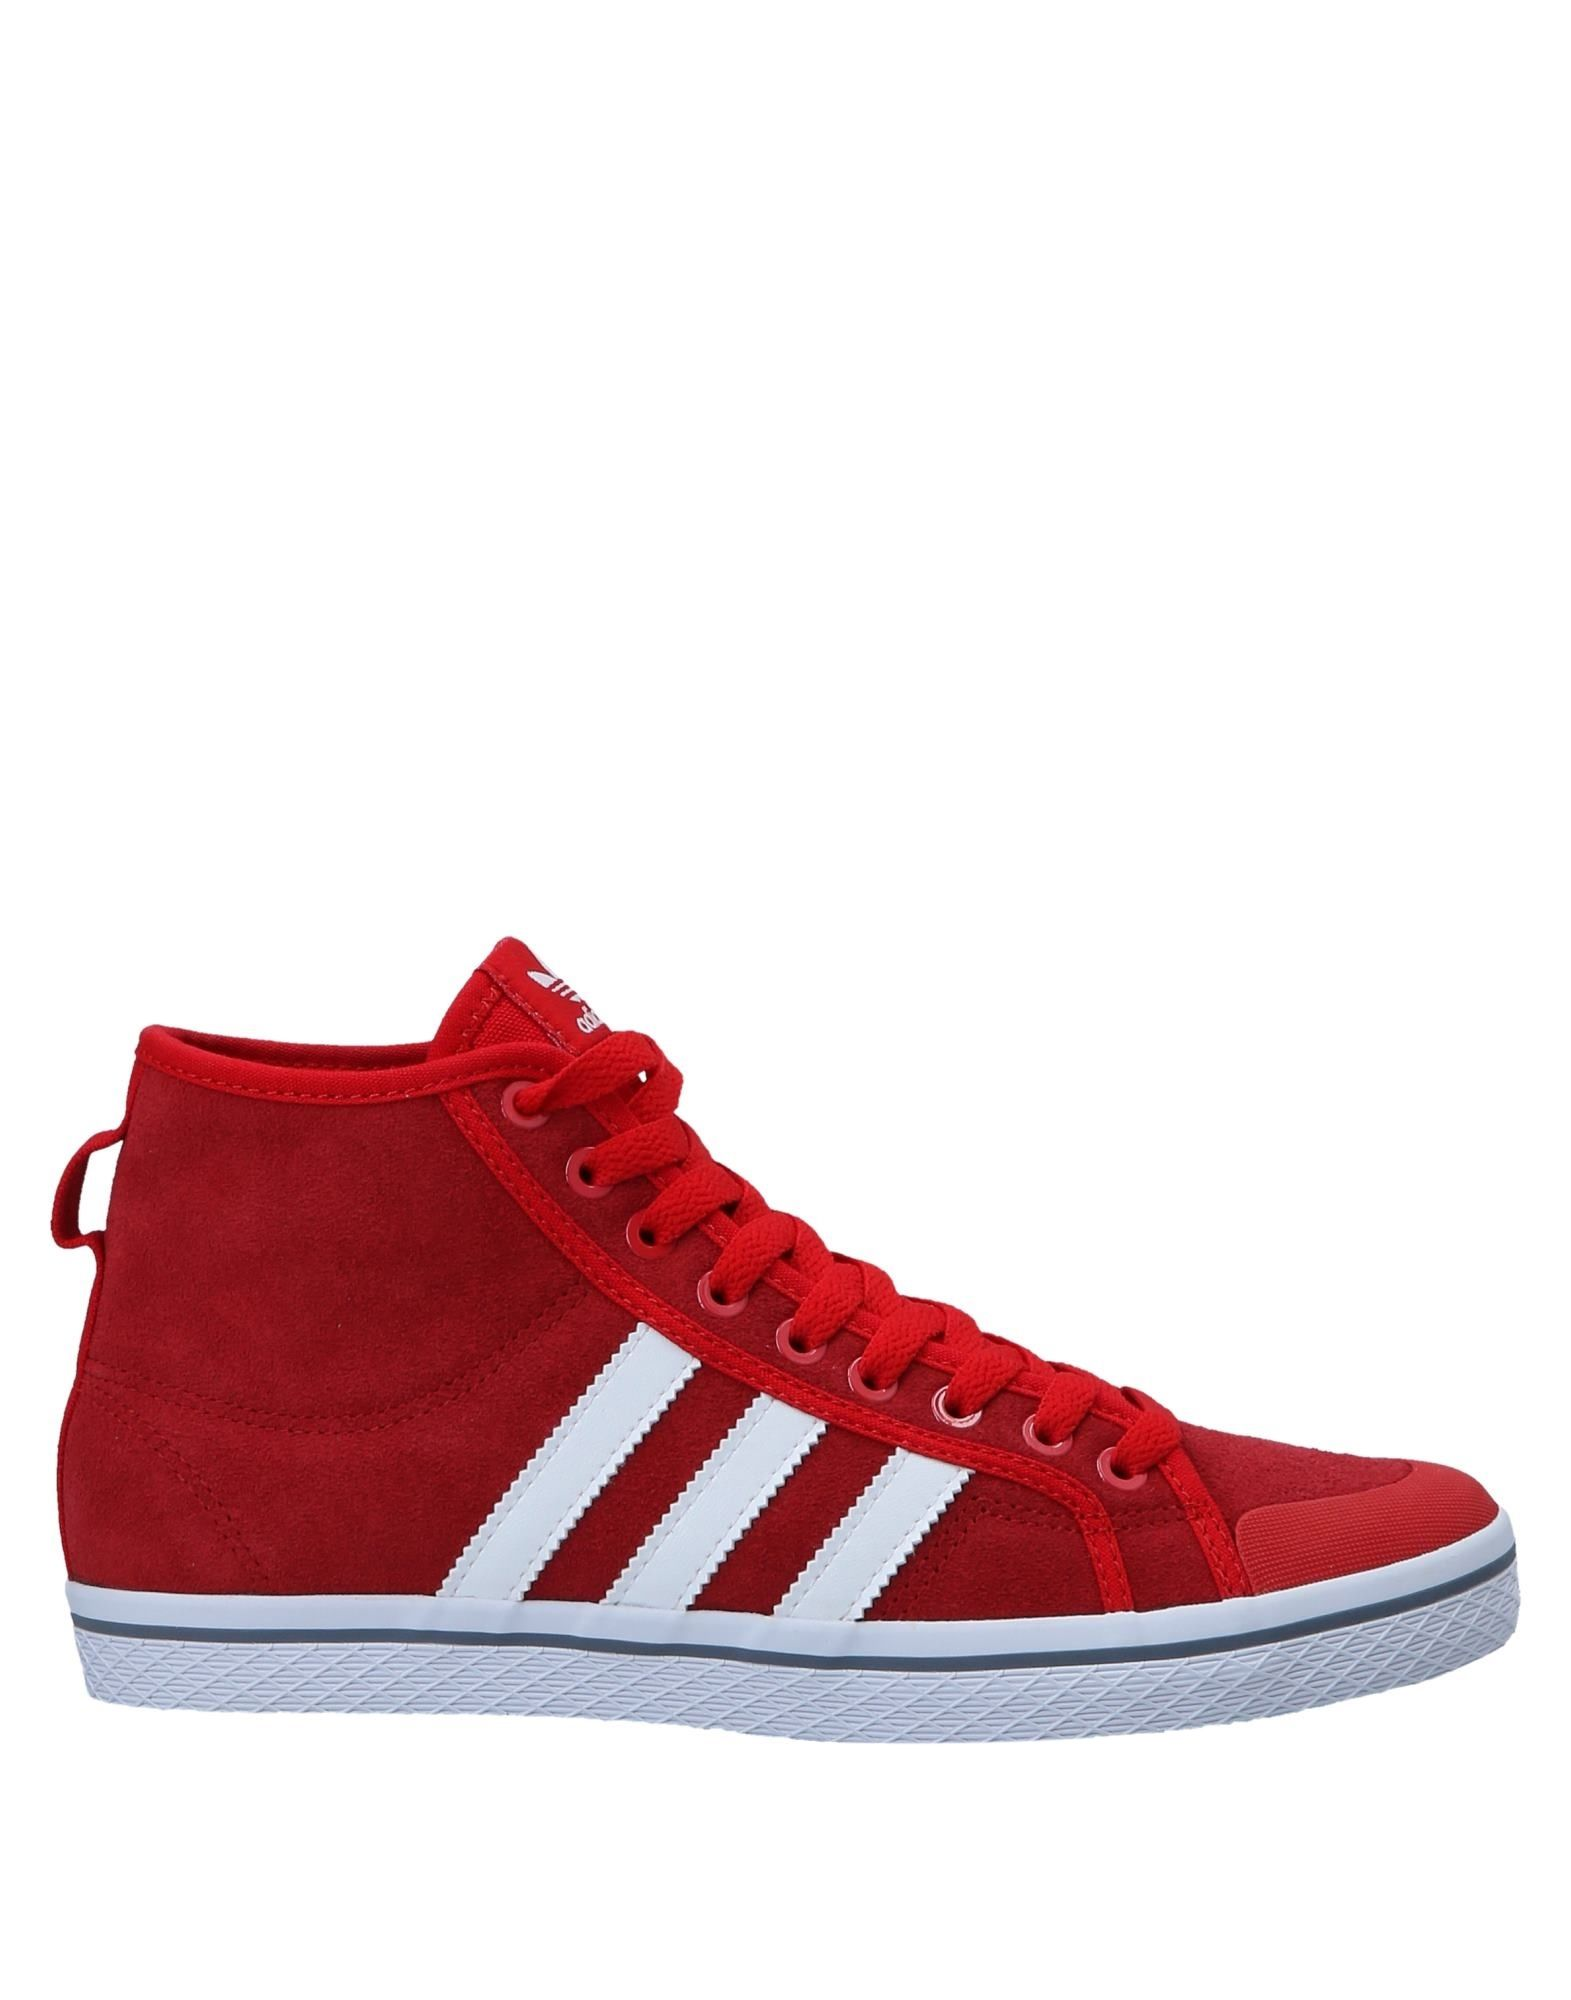 Adidas Originals Sneakers - Women on Adidas Originals Sneakers online on Women  Australia - 11554716BA 80f1f6